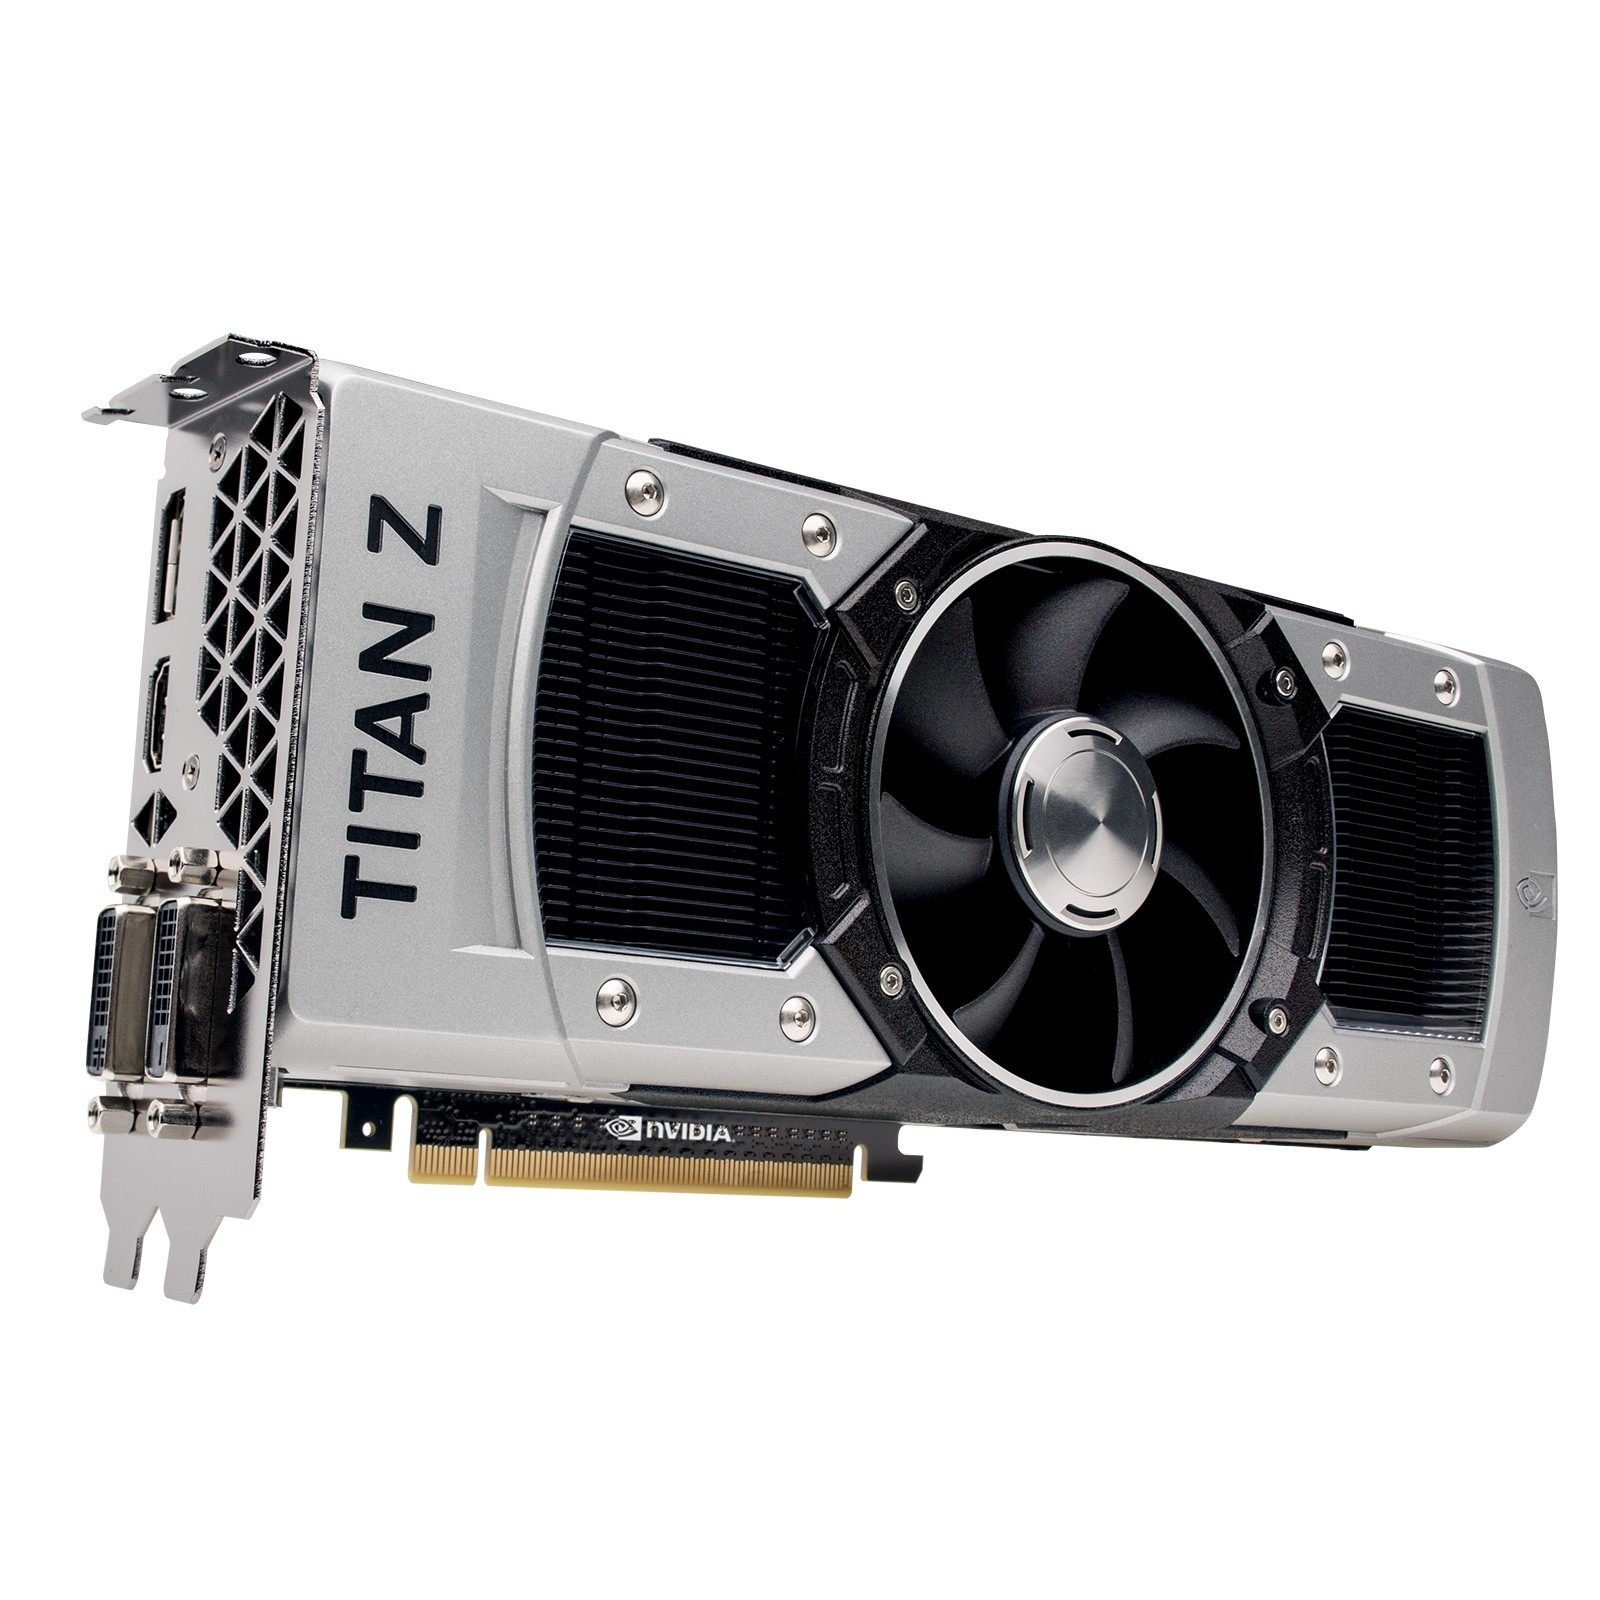 nvidia geforce gtx titan z dual gpu graphics card selling from april 29 softpedia. Black Bedroom Furniture Sets. Home Design Ideas